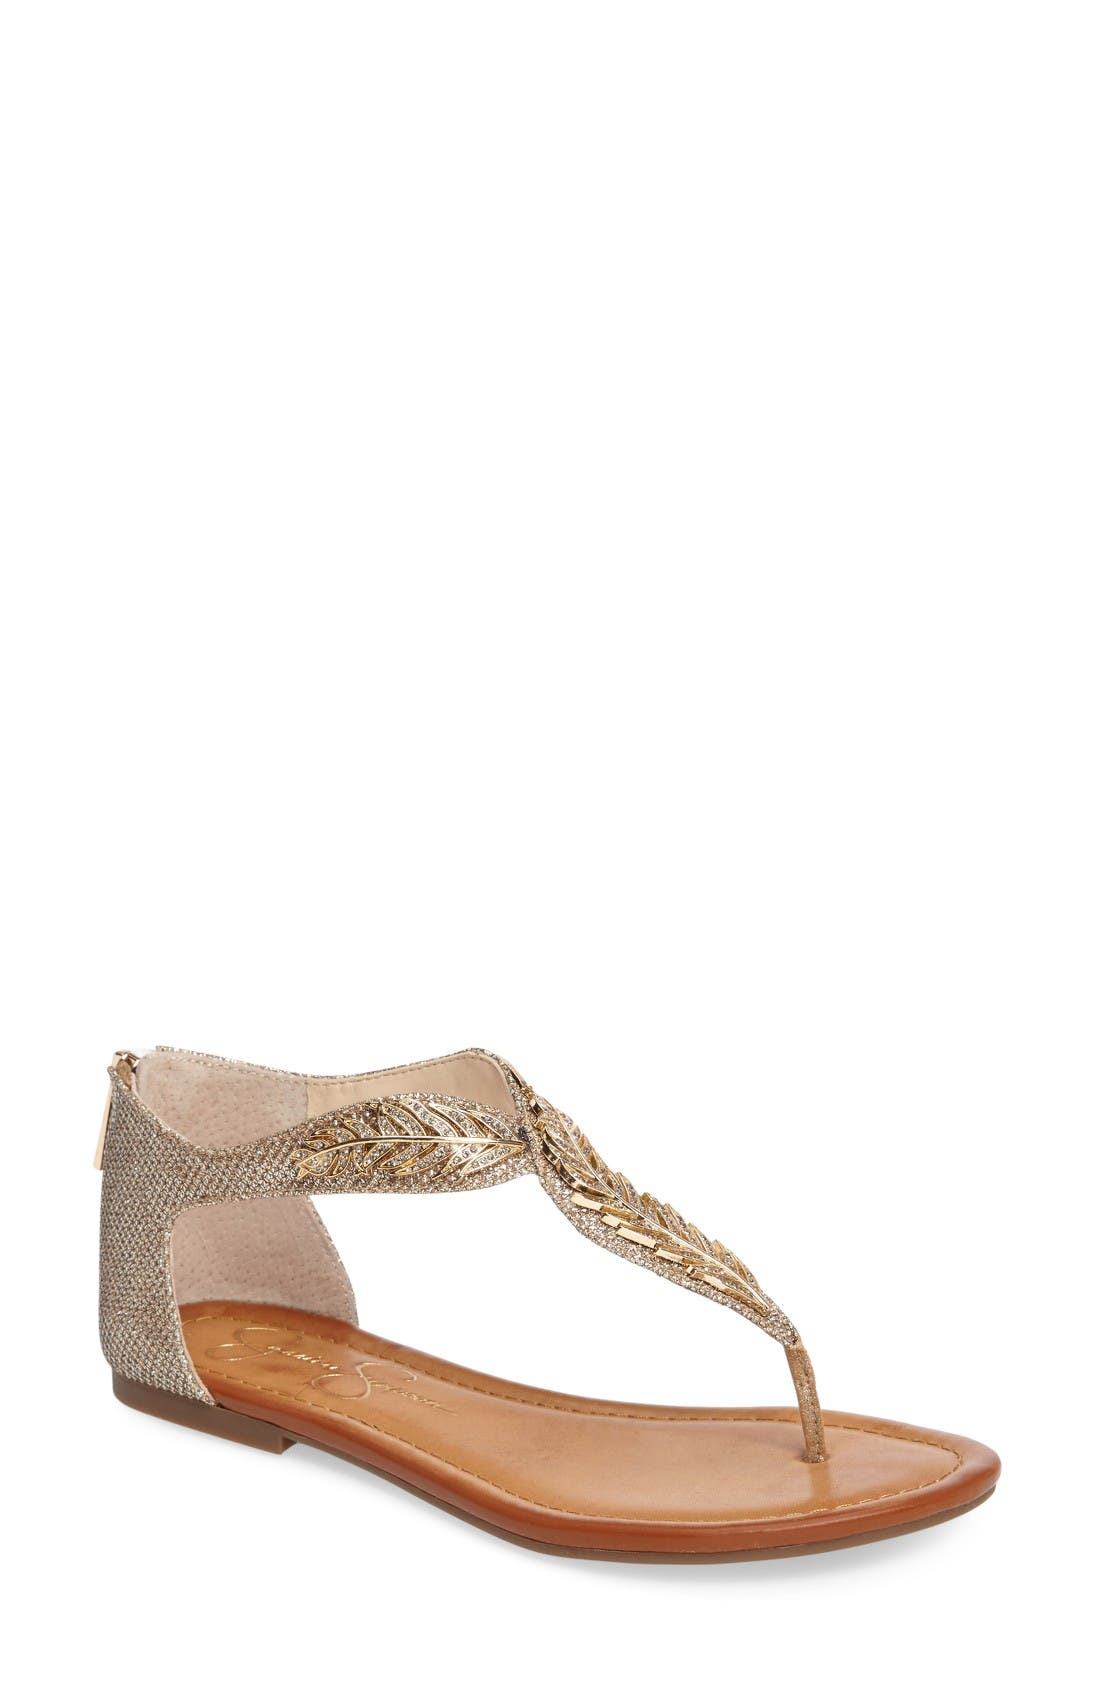 Kalie Embellished Feather Sandal,                             Main thumbnail 1, color,                             Gold Fabric